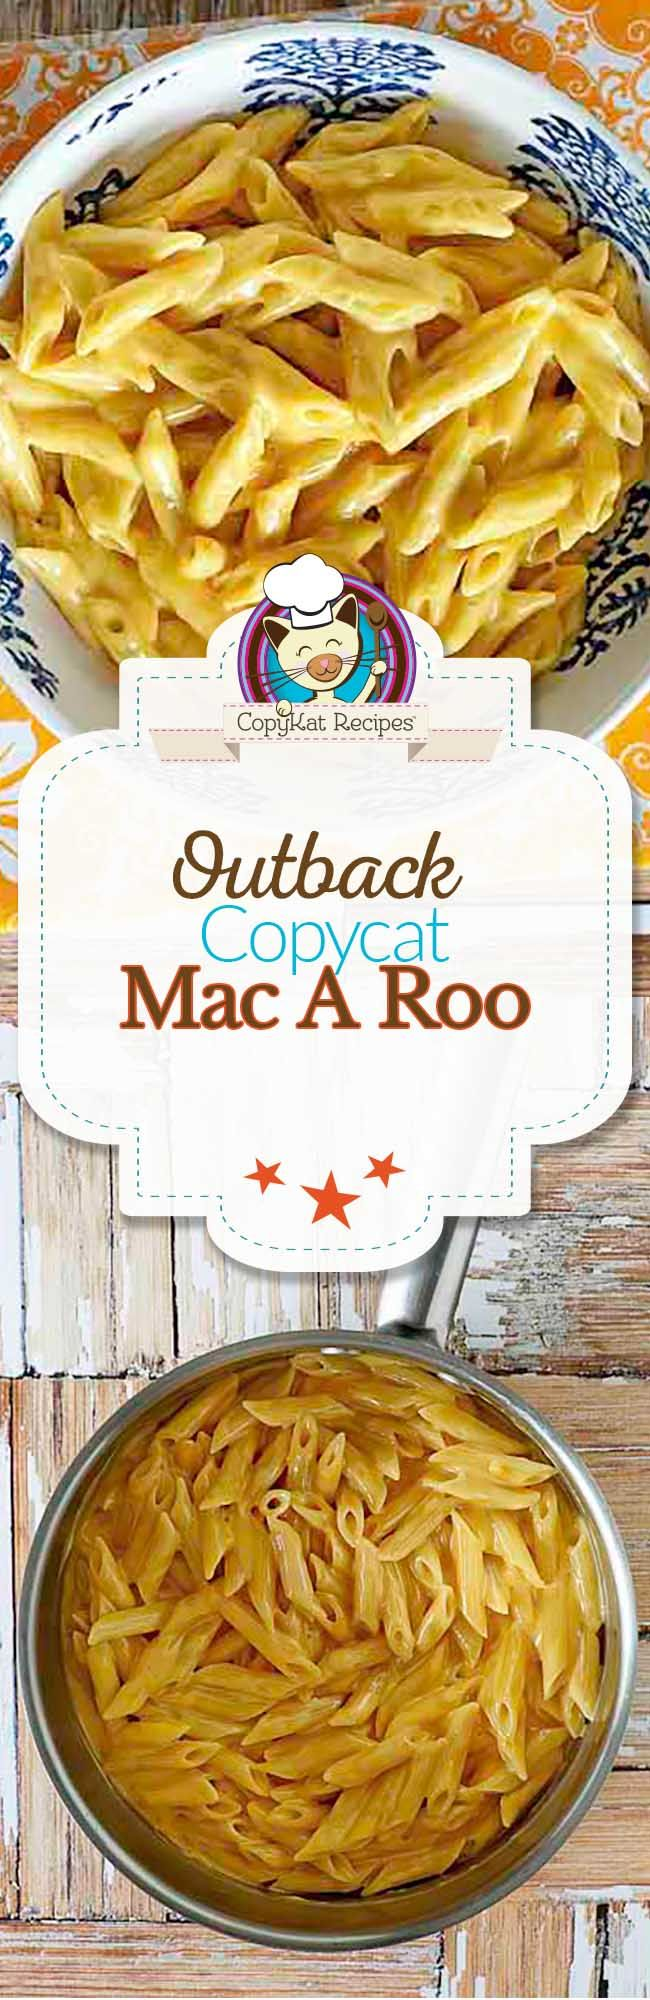 Outback Steakhouse makes a delicious macaroni and cheese, you can make one just like they do at home. No need to steal your child's food anymore.